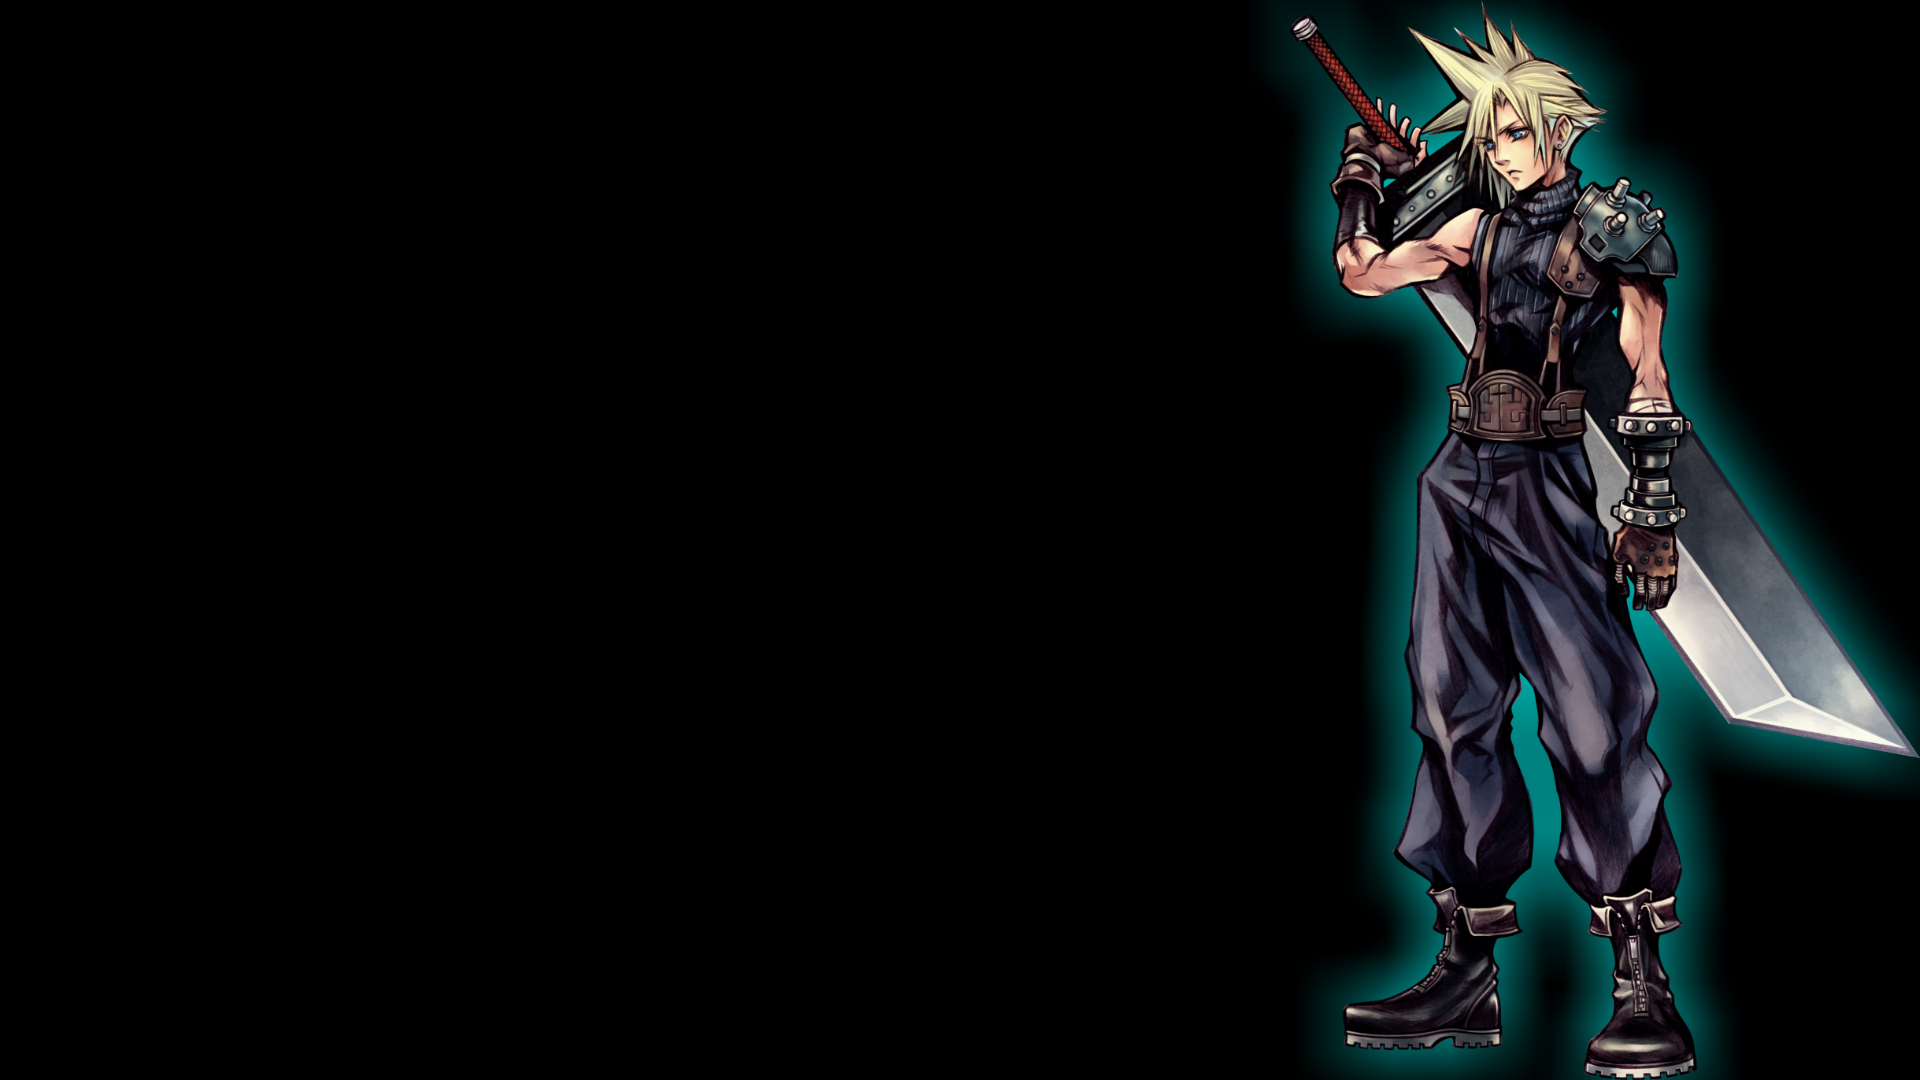 Final Fantasy VII Wallpapers Wallpaper 1600x1000 Ff7 45